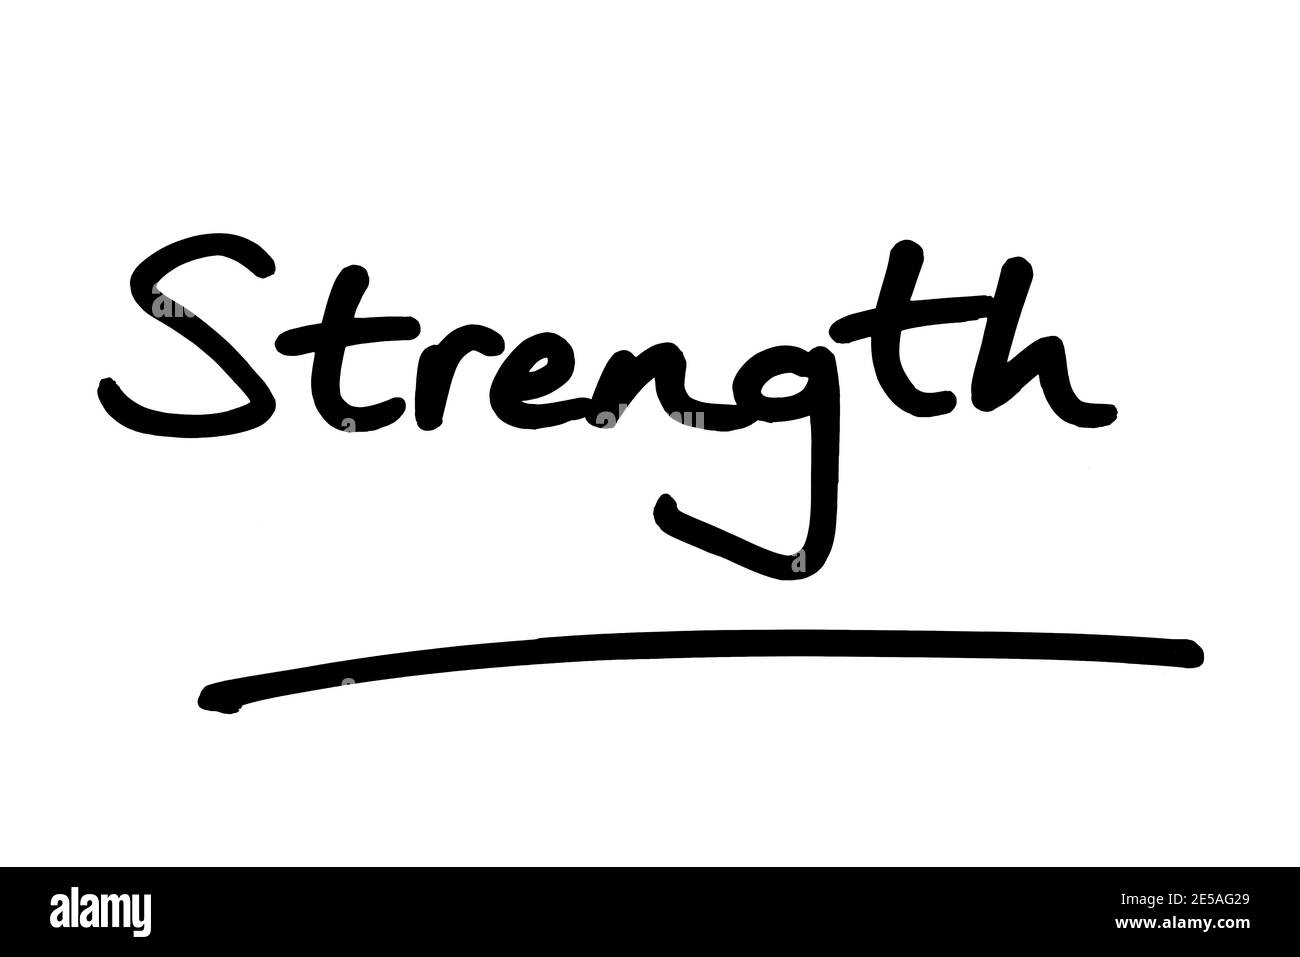 The word Strength, handwritten on a white background. Stock Photo